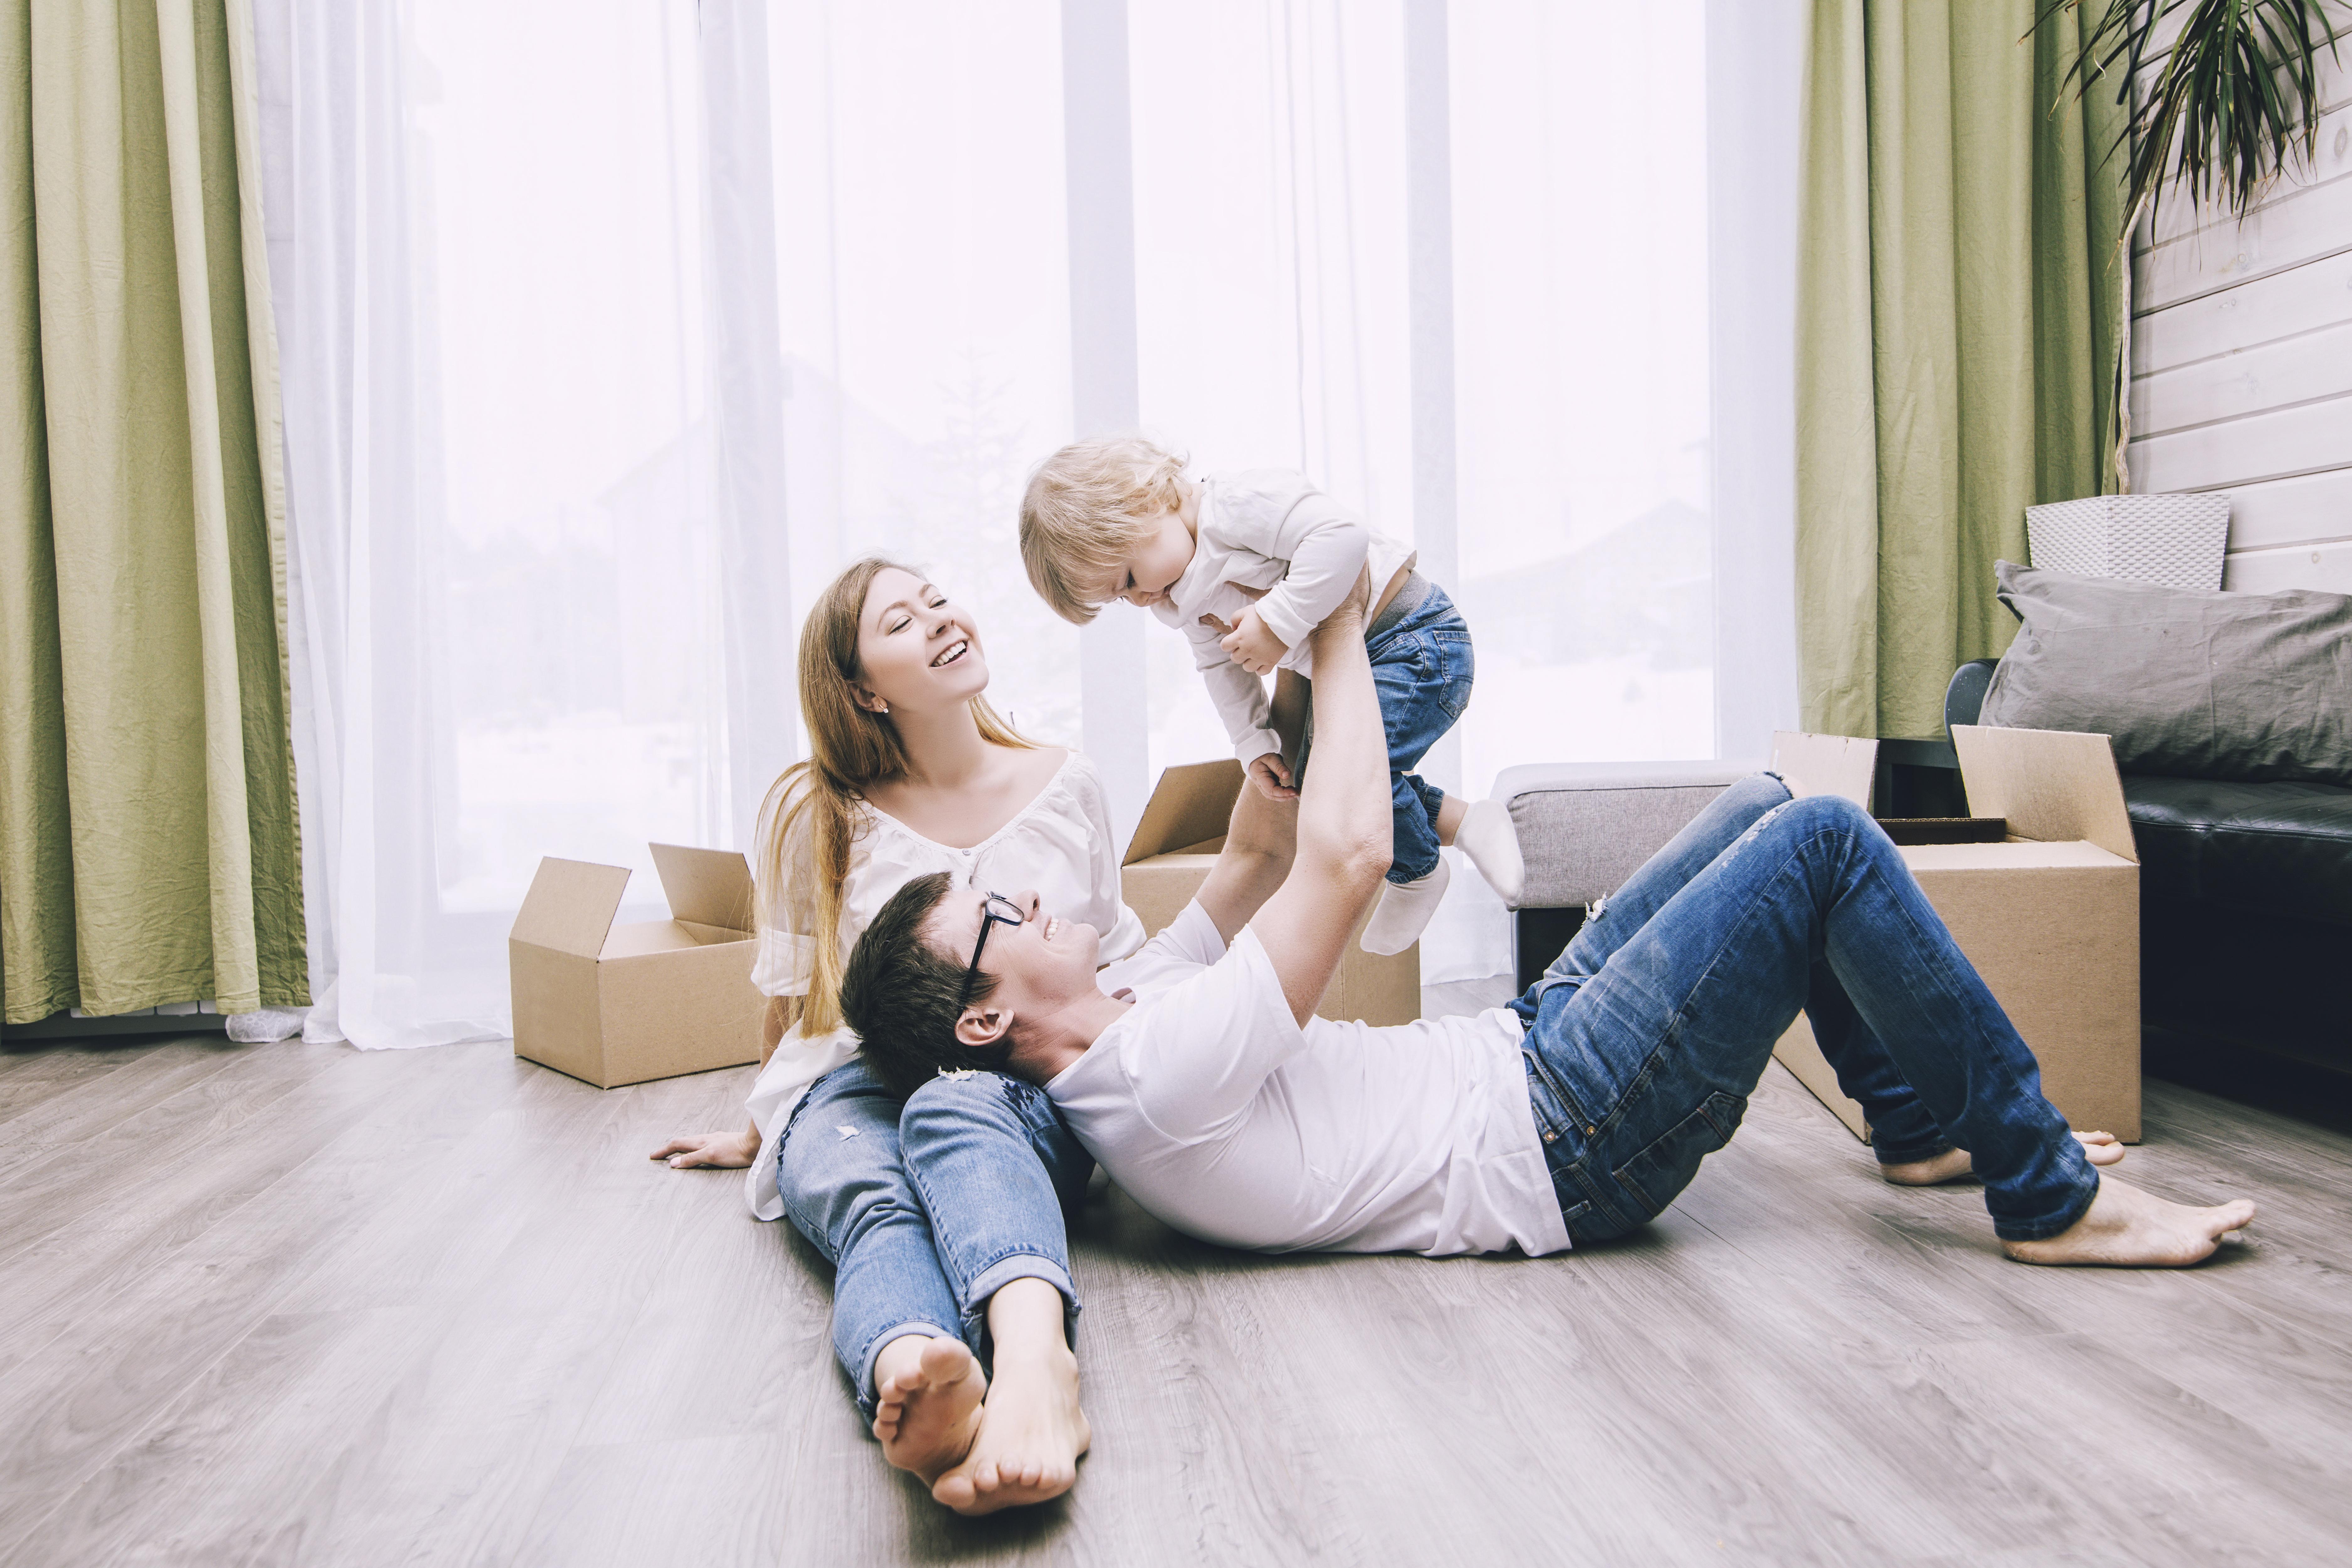 Relocating? How to Buy a Home in a Market You Don't Know